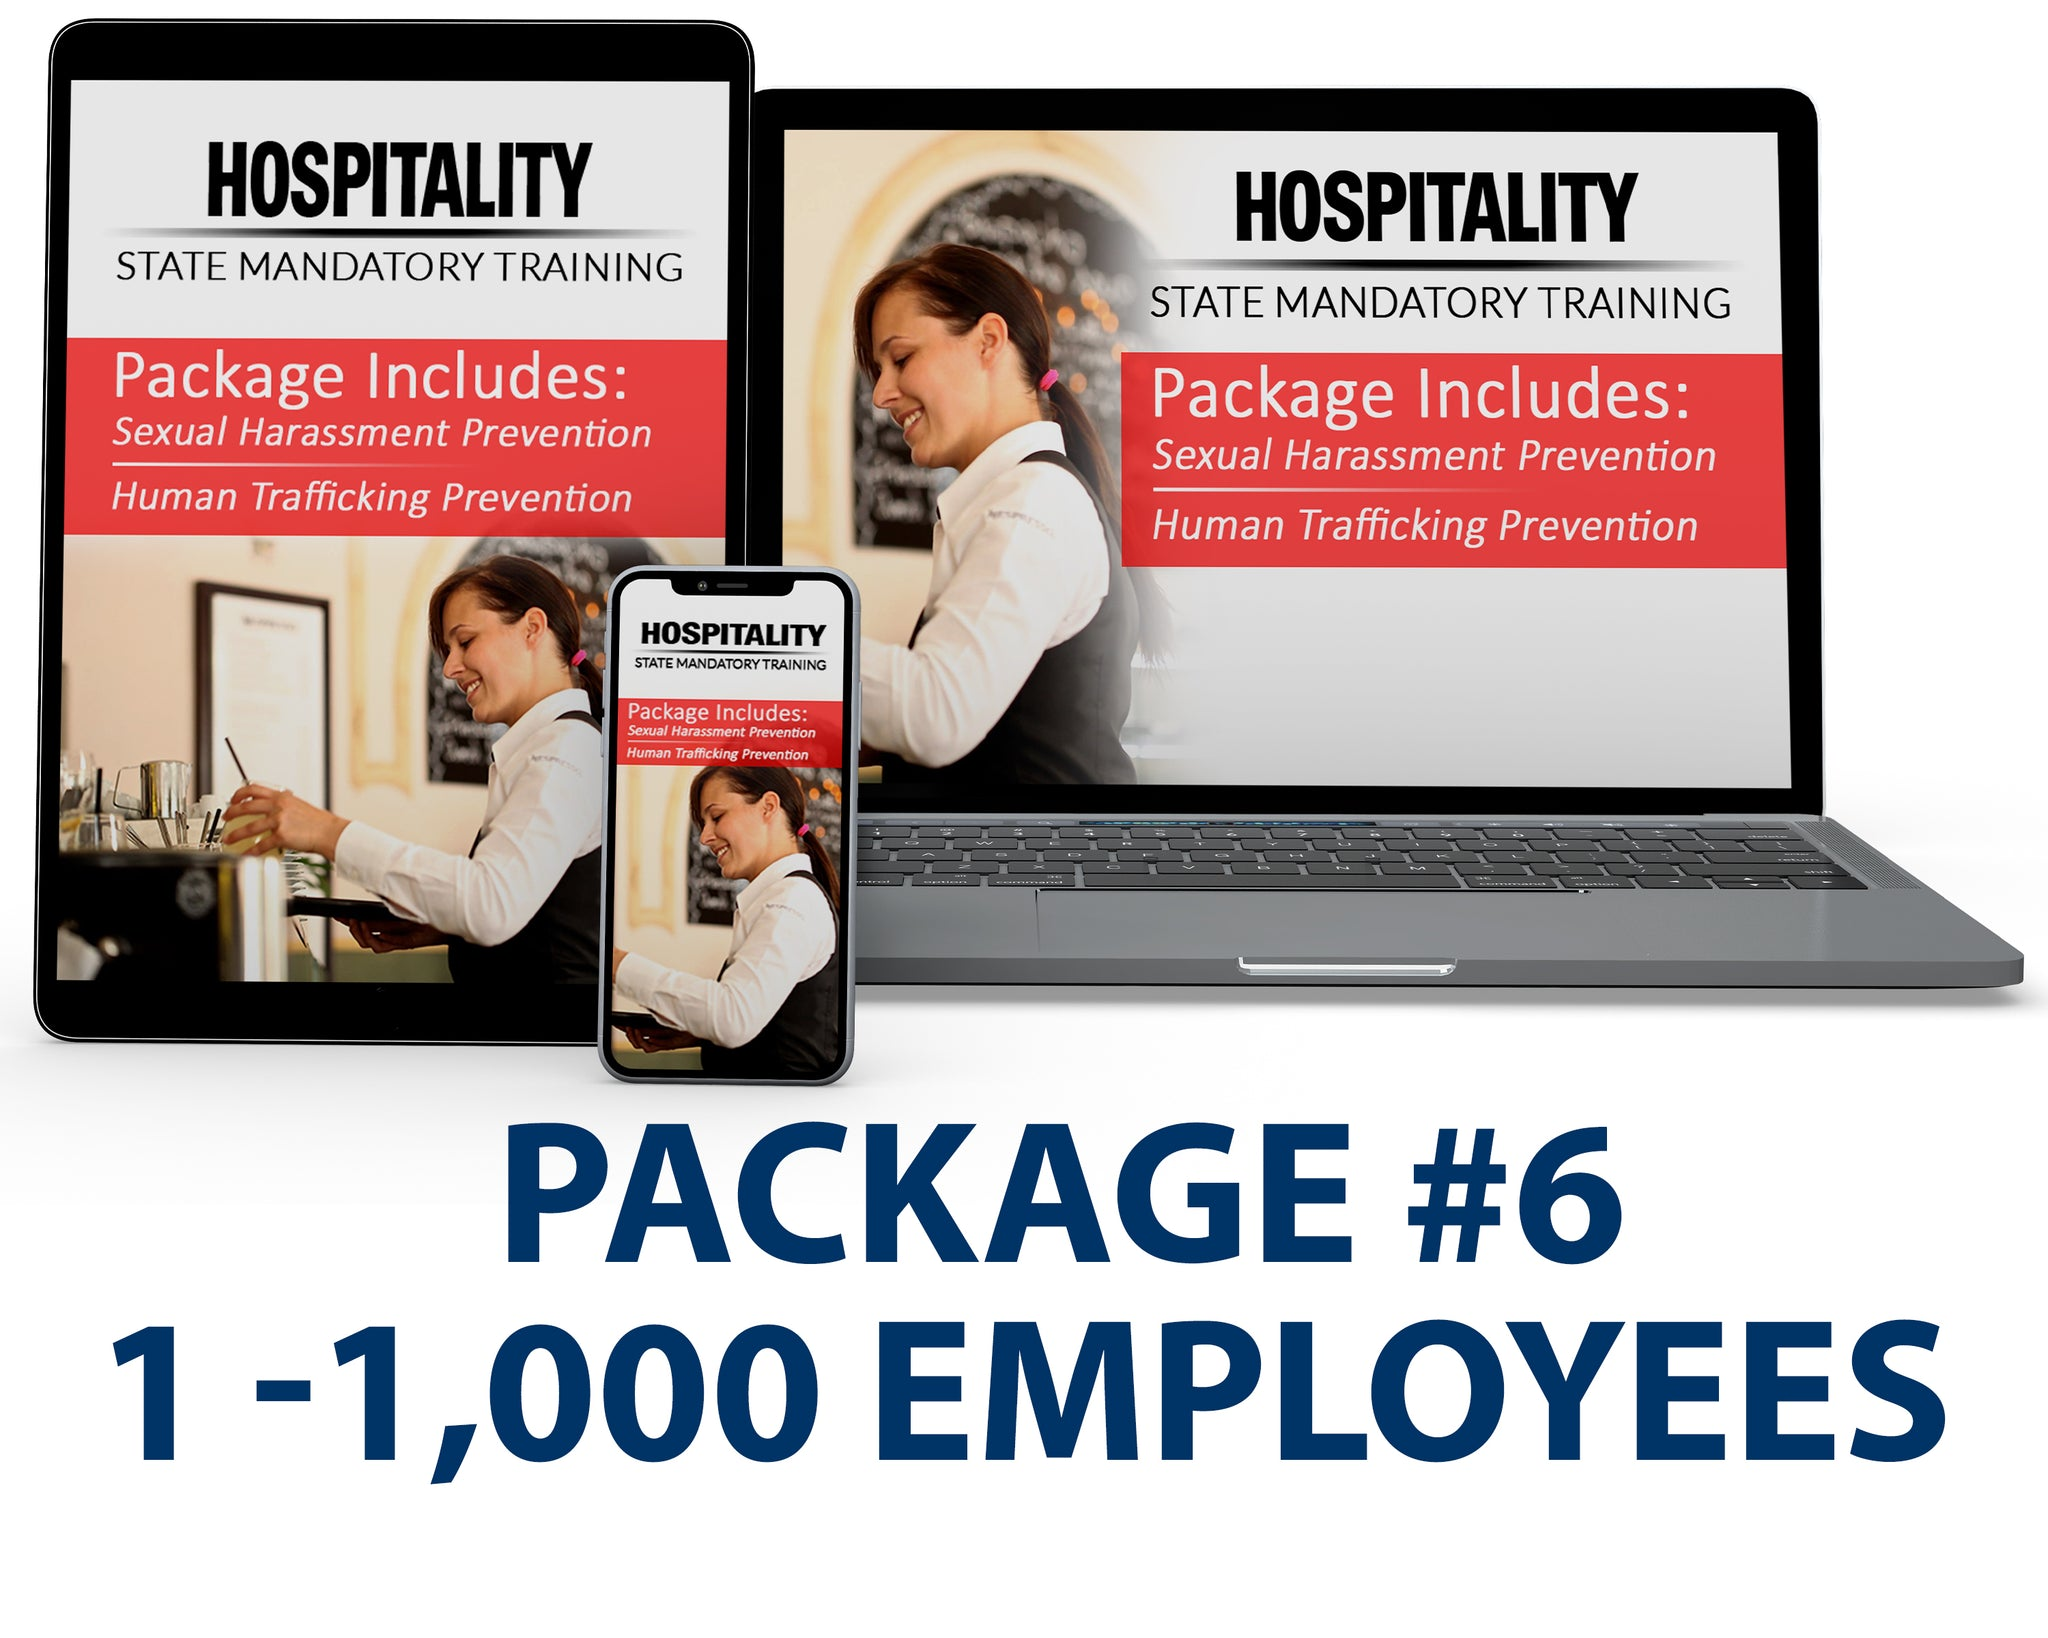 CA - Hospitality Bundle Package #6 (1-1,000 Employees) - myCEcourse